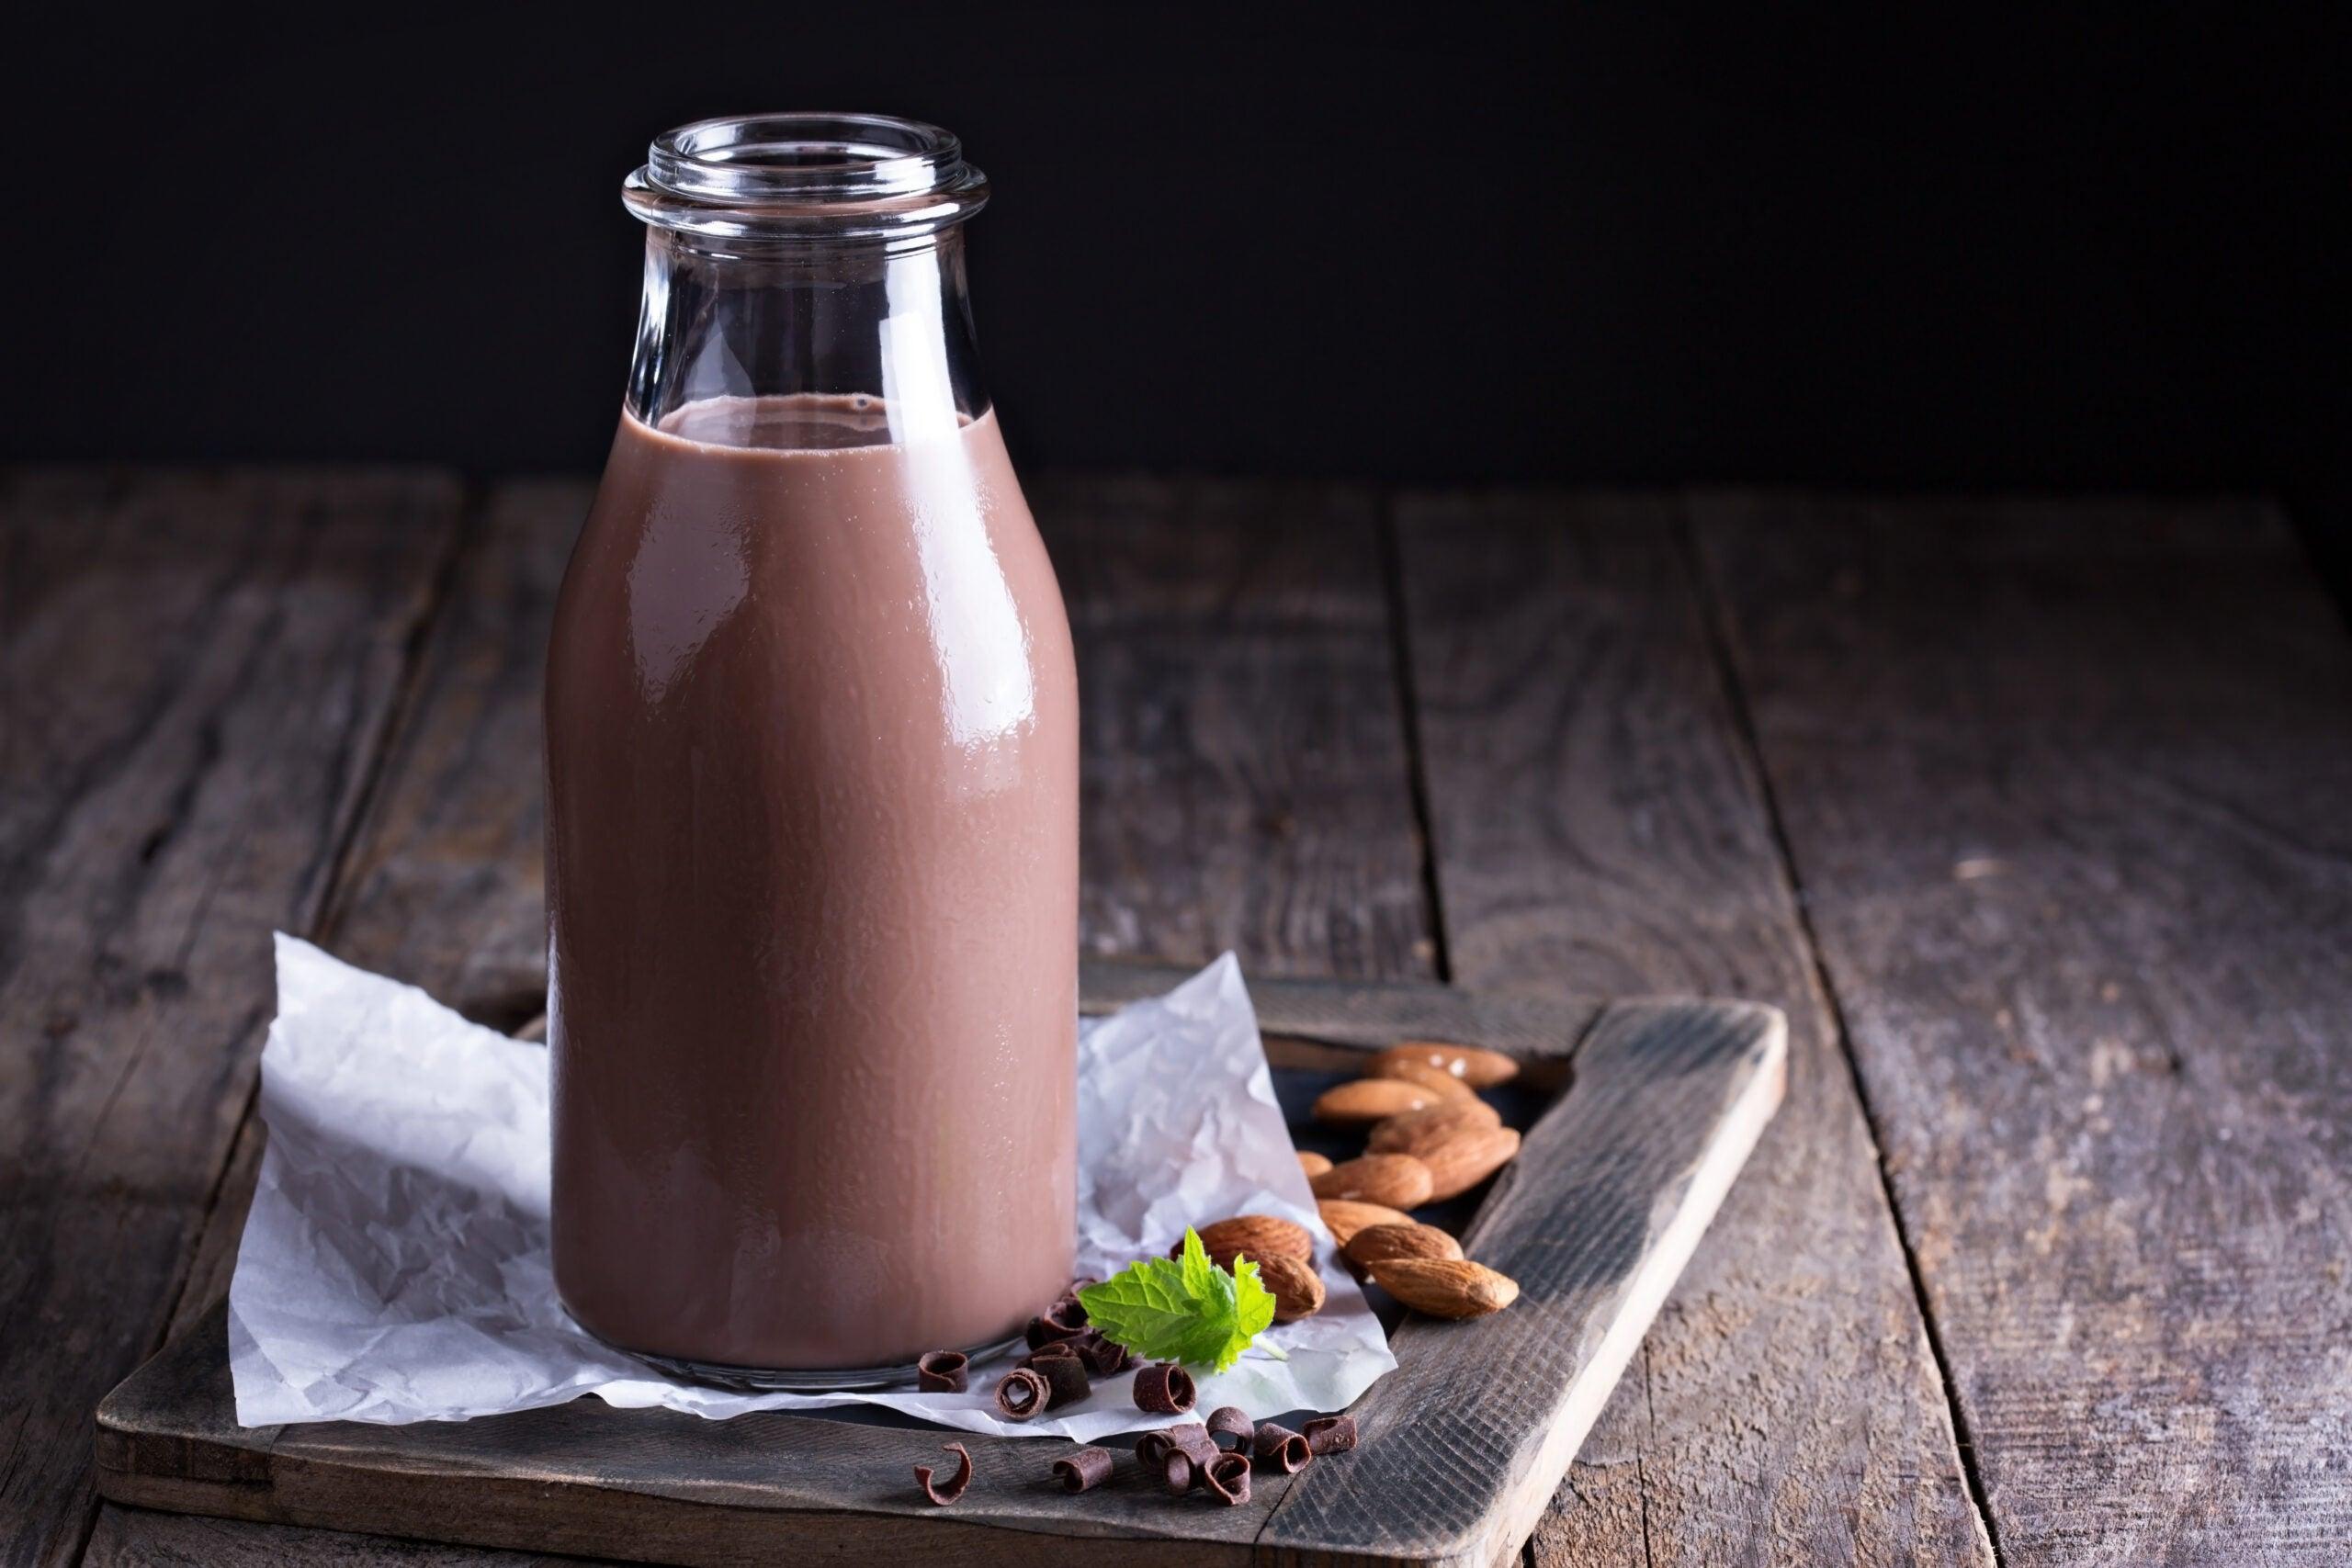 a bottle of chocolate milk